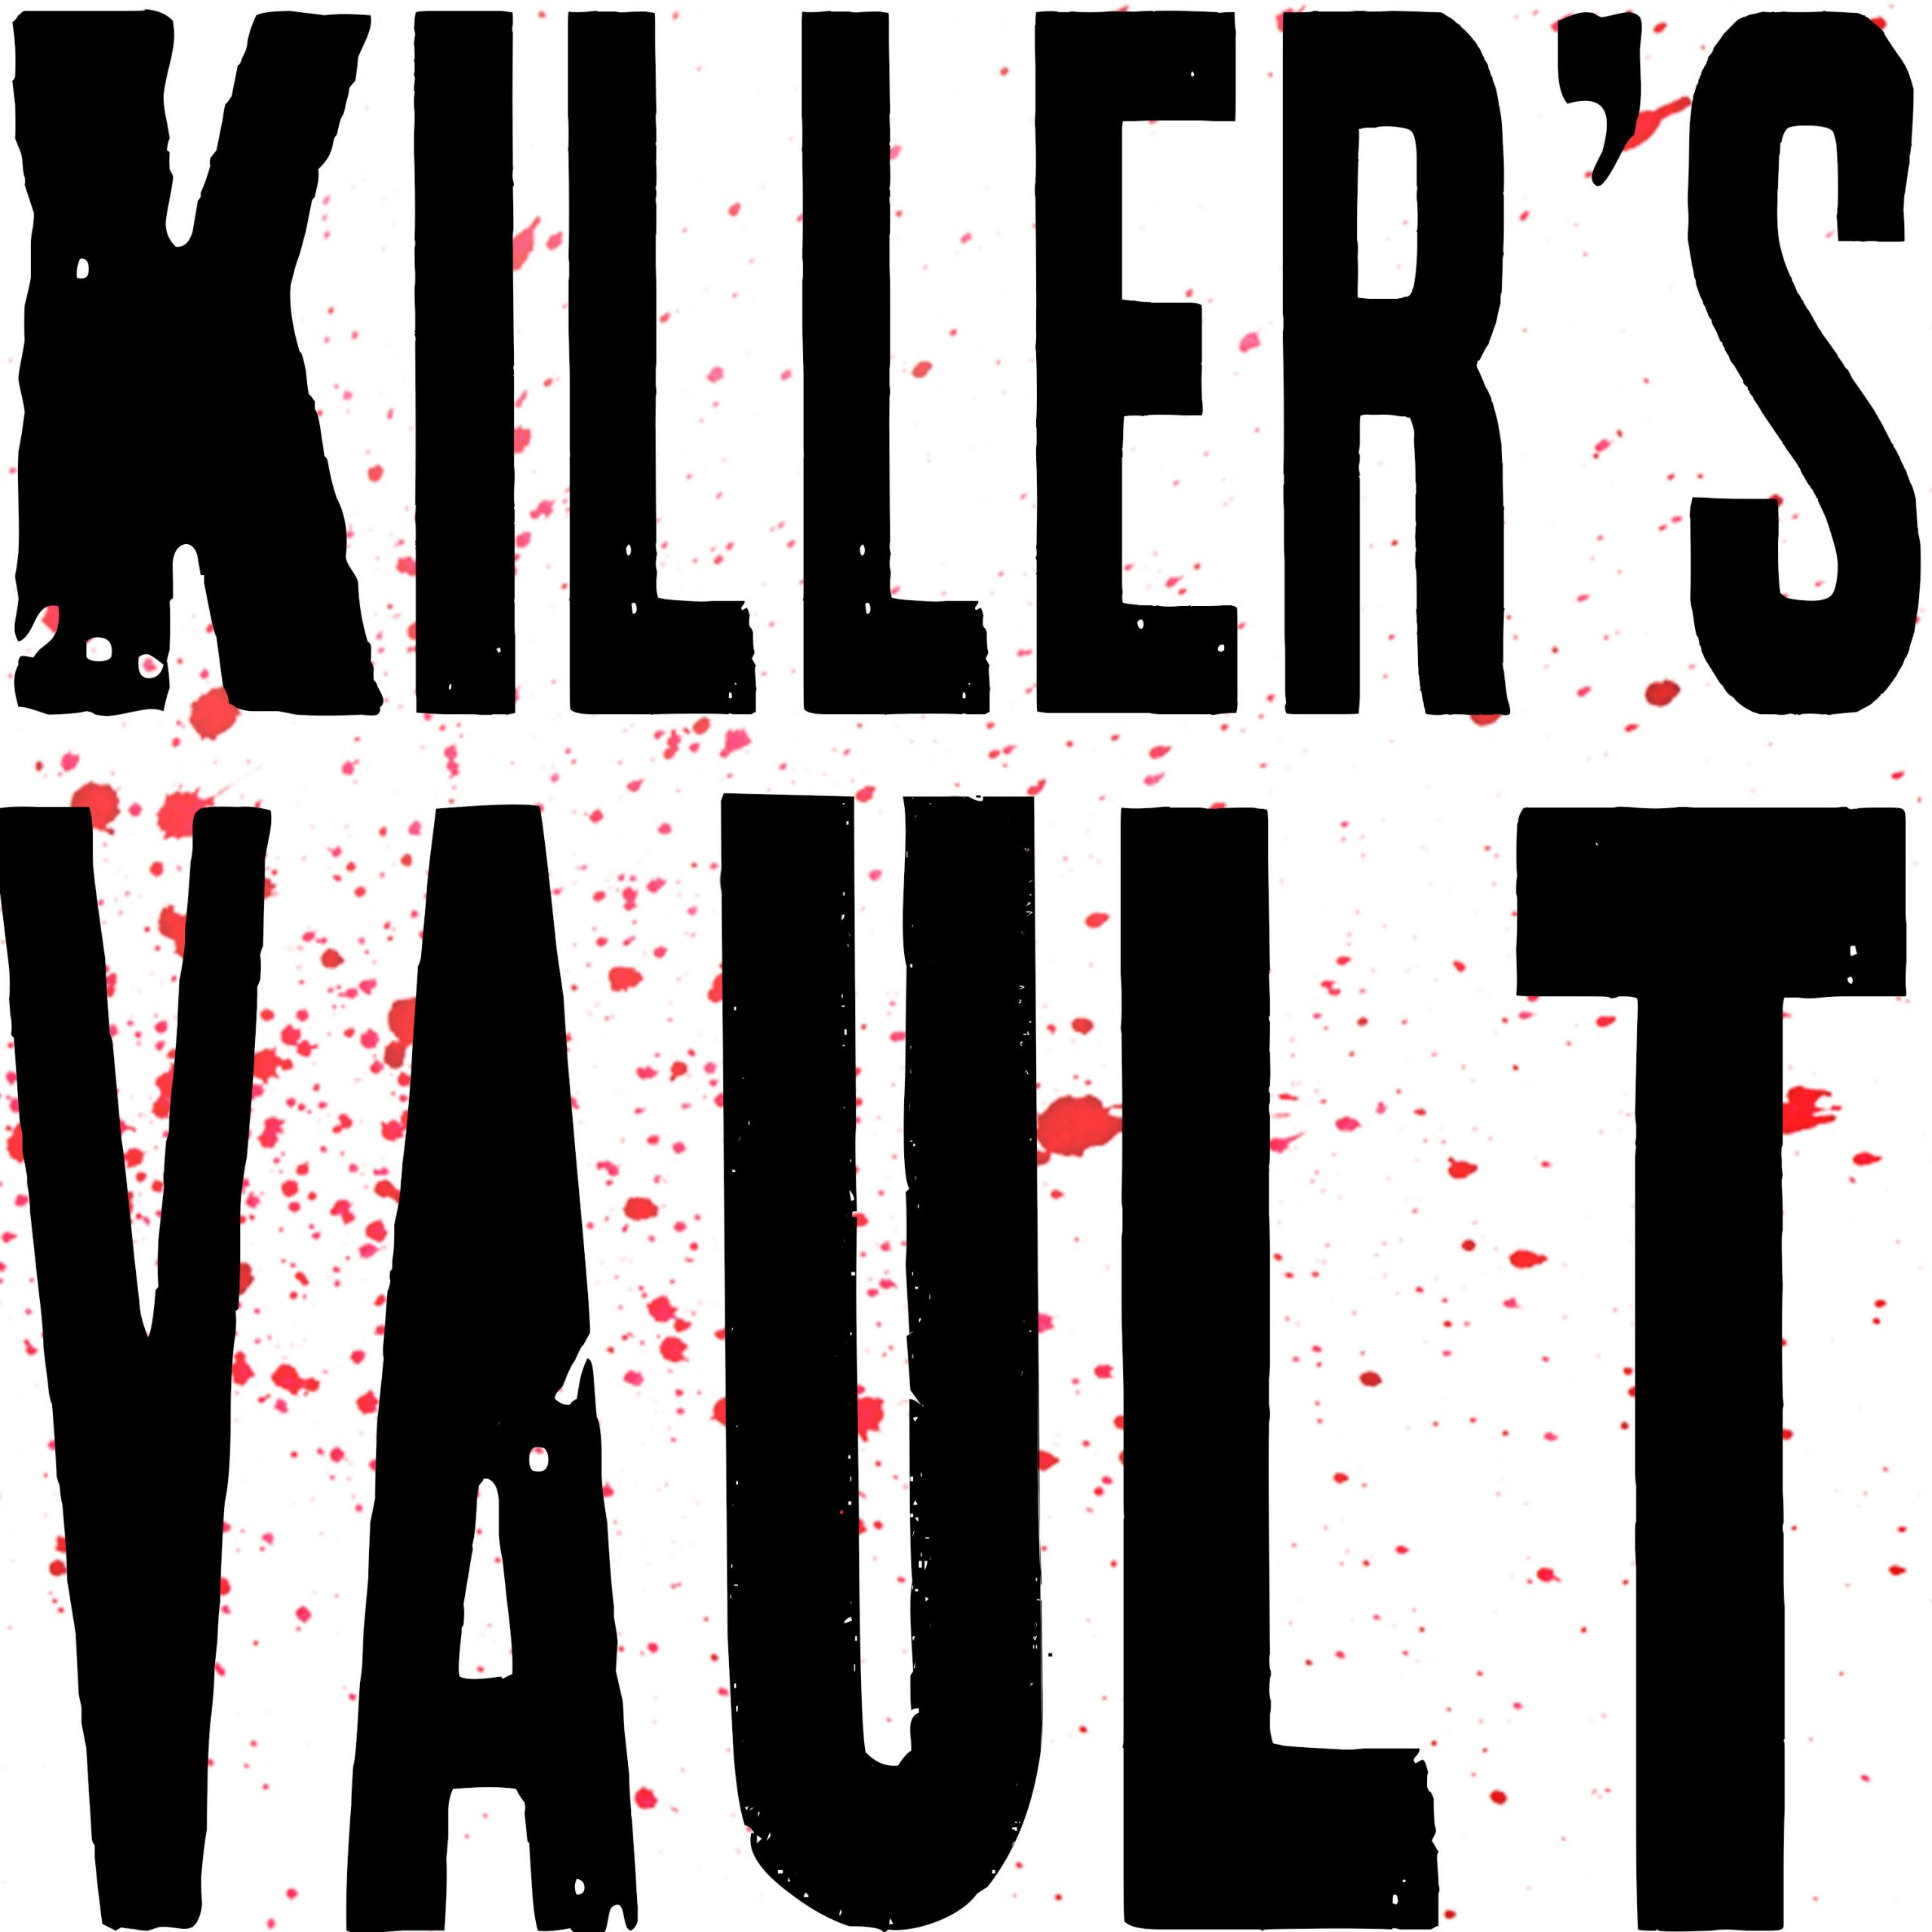 'KILLER'S VAULT' PODCAST WILL REVEAL NEVER-BEFORE-SEEN-OR-HEARD LETTERS AND AUDIO OF AMERICA'S MOST NOTORIOUS SERIAL KILLERS, LAUNCHING JUNE 14, 2021